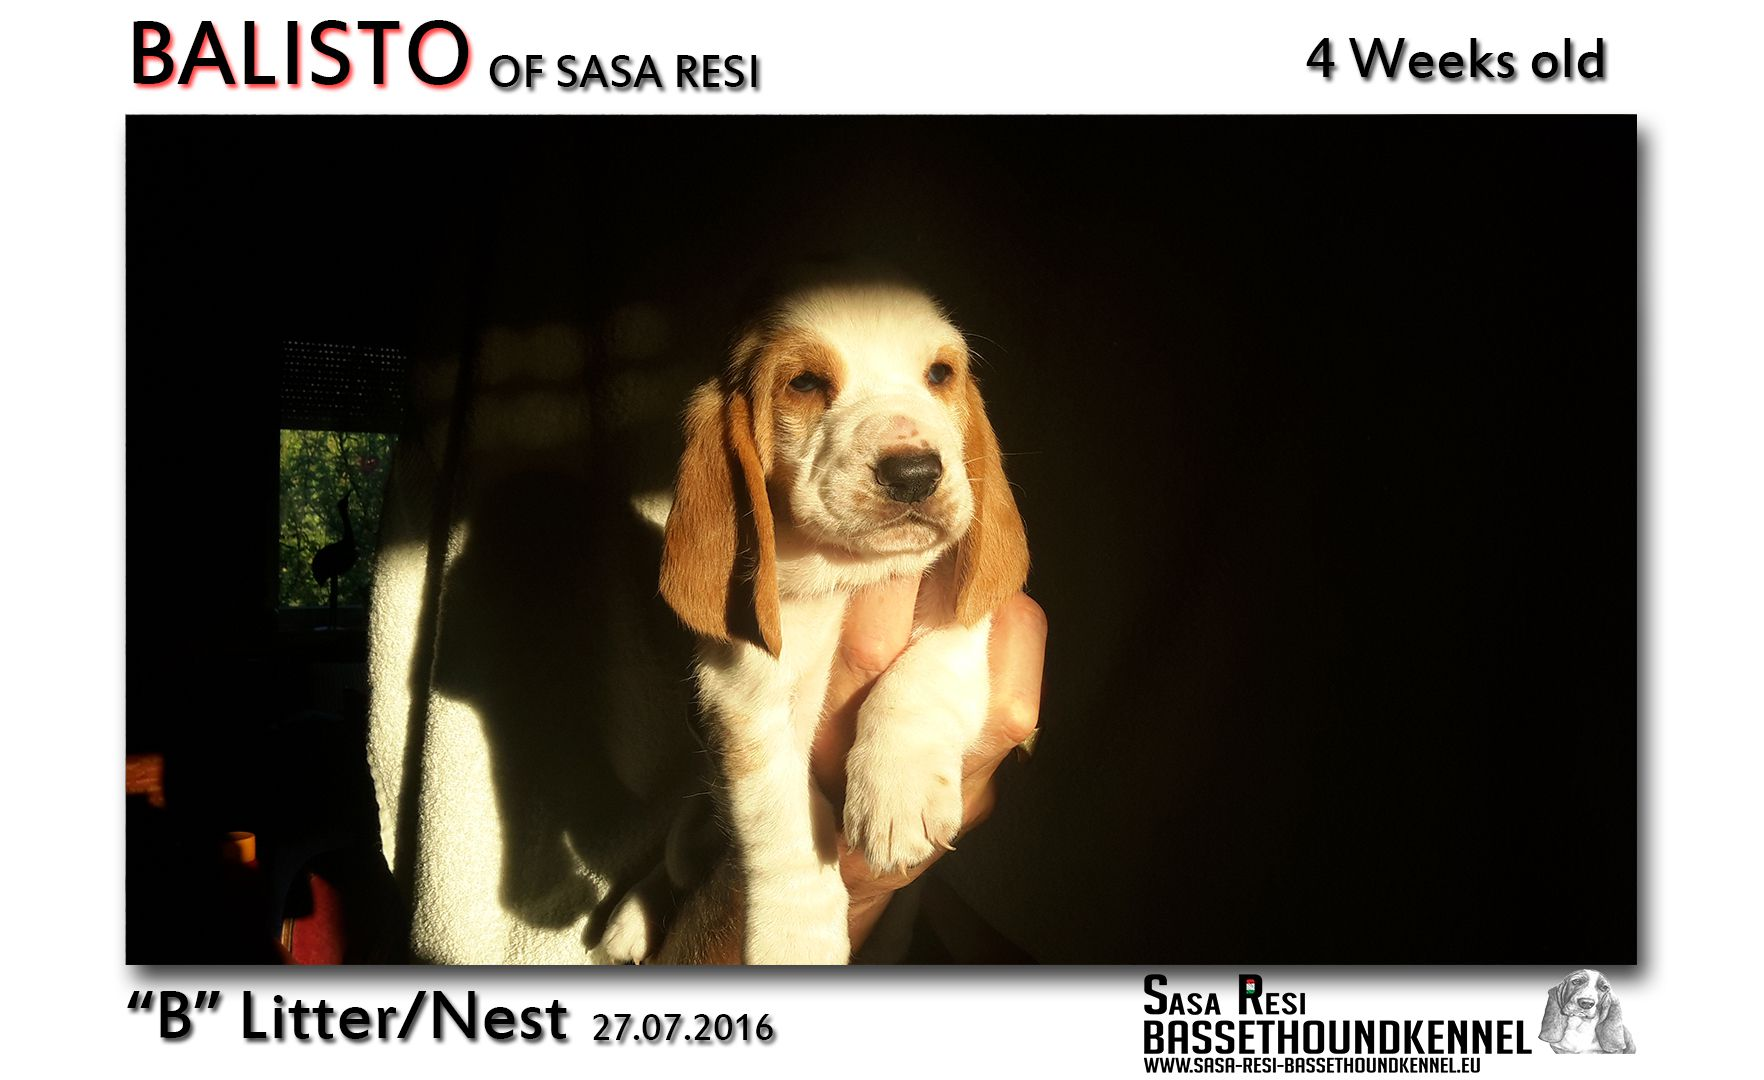 1 compressed 10 SaSa ReSi Bassethoundkennel